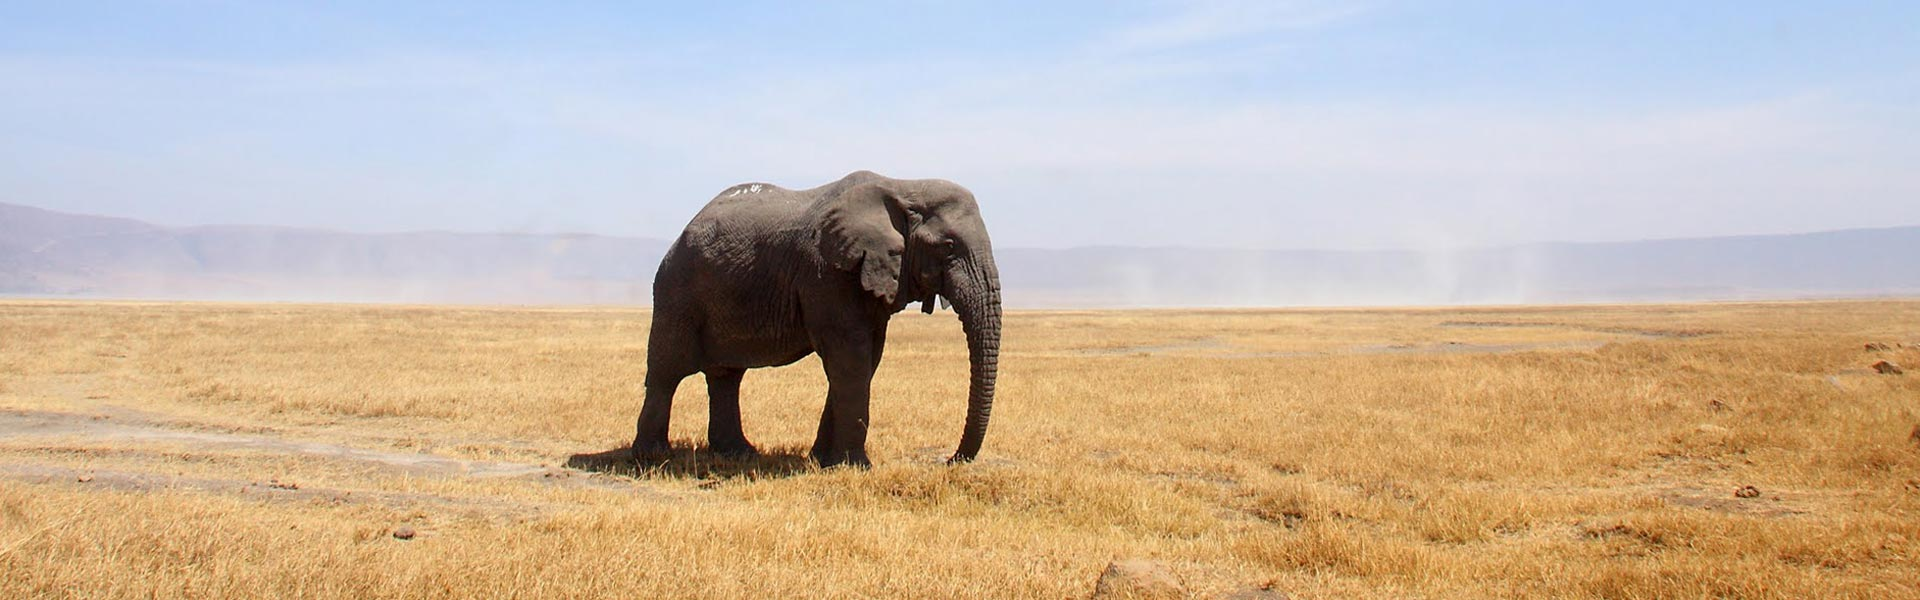 Elephant bull standing in the Ngorongoro Crater of Tanzania in Africa